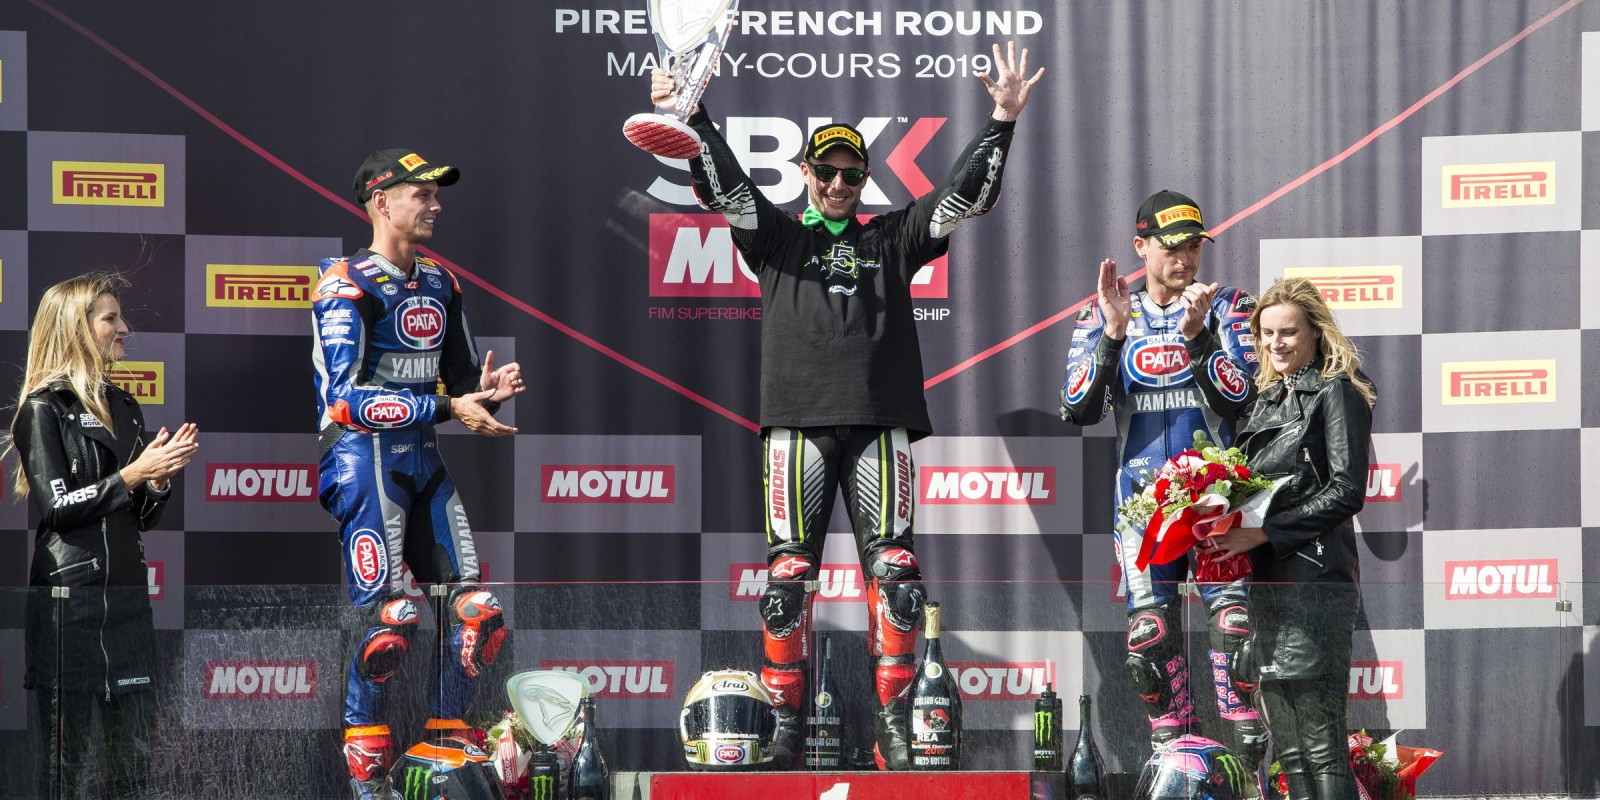 Jonathan Rea at the 2019 WorldSBK French round: World Champion